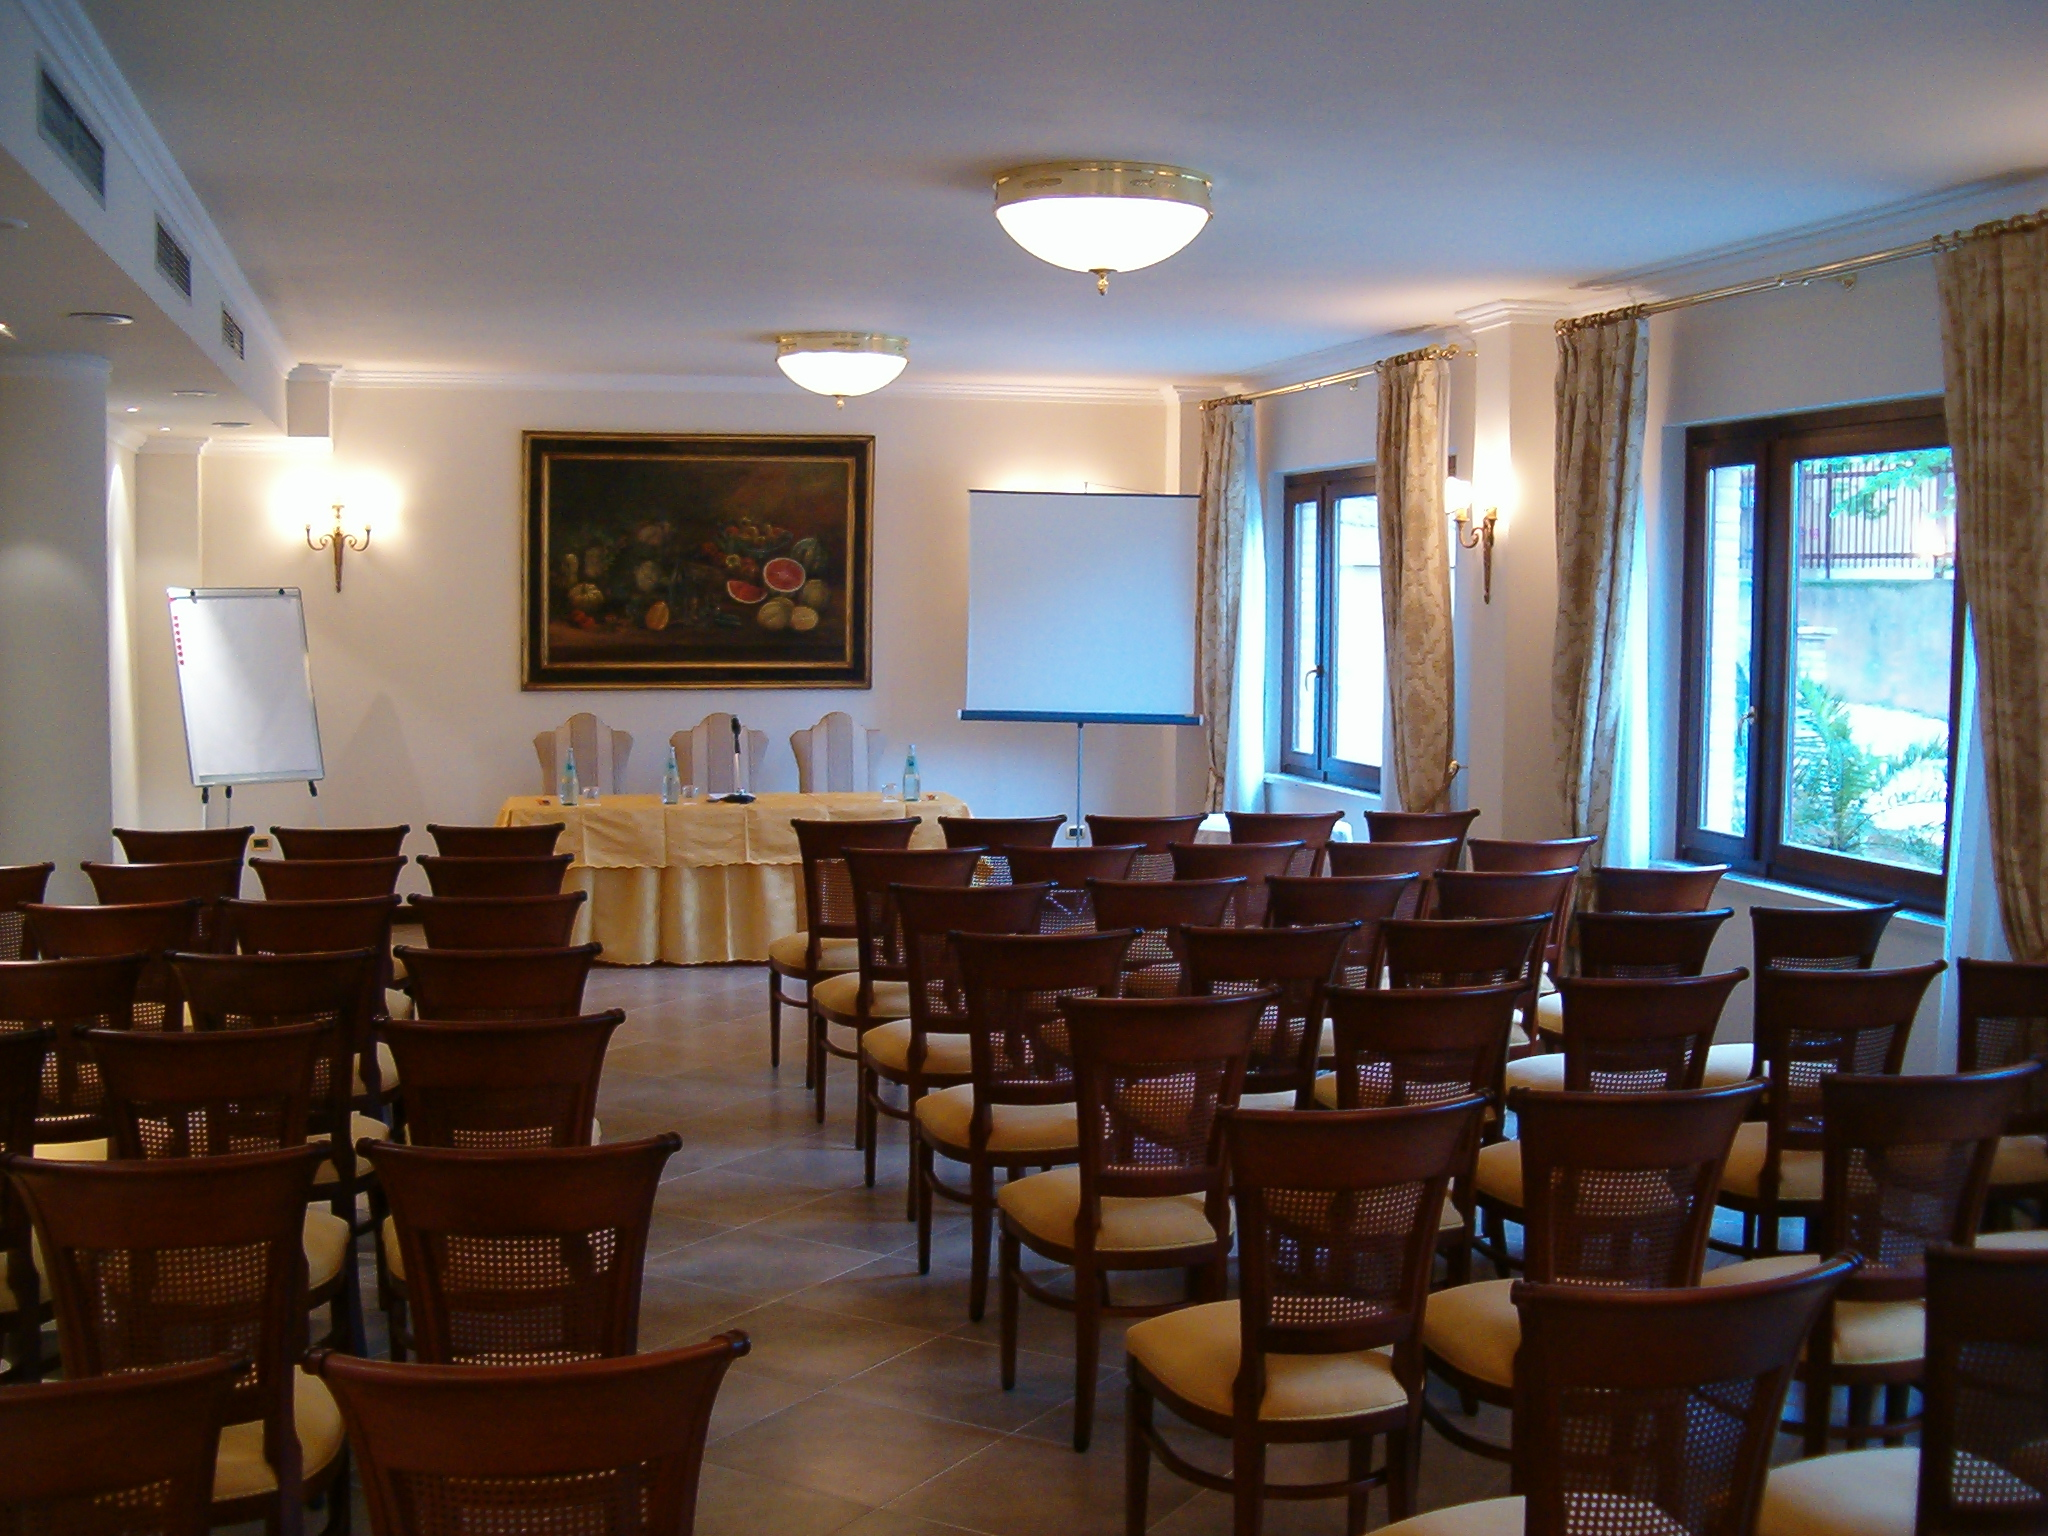 Rossini Hall